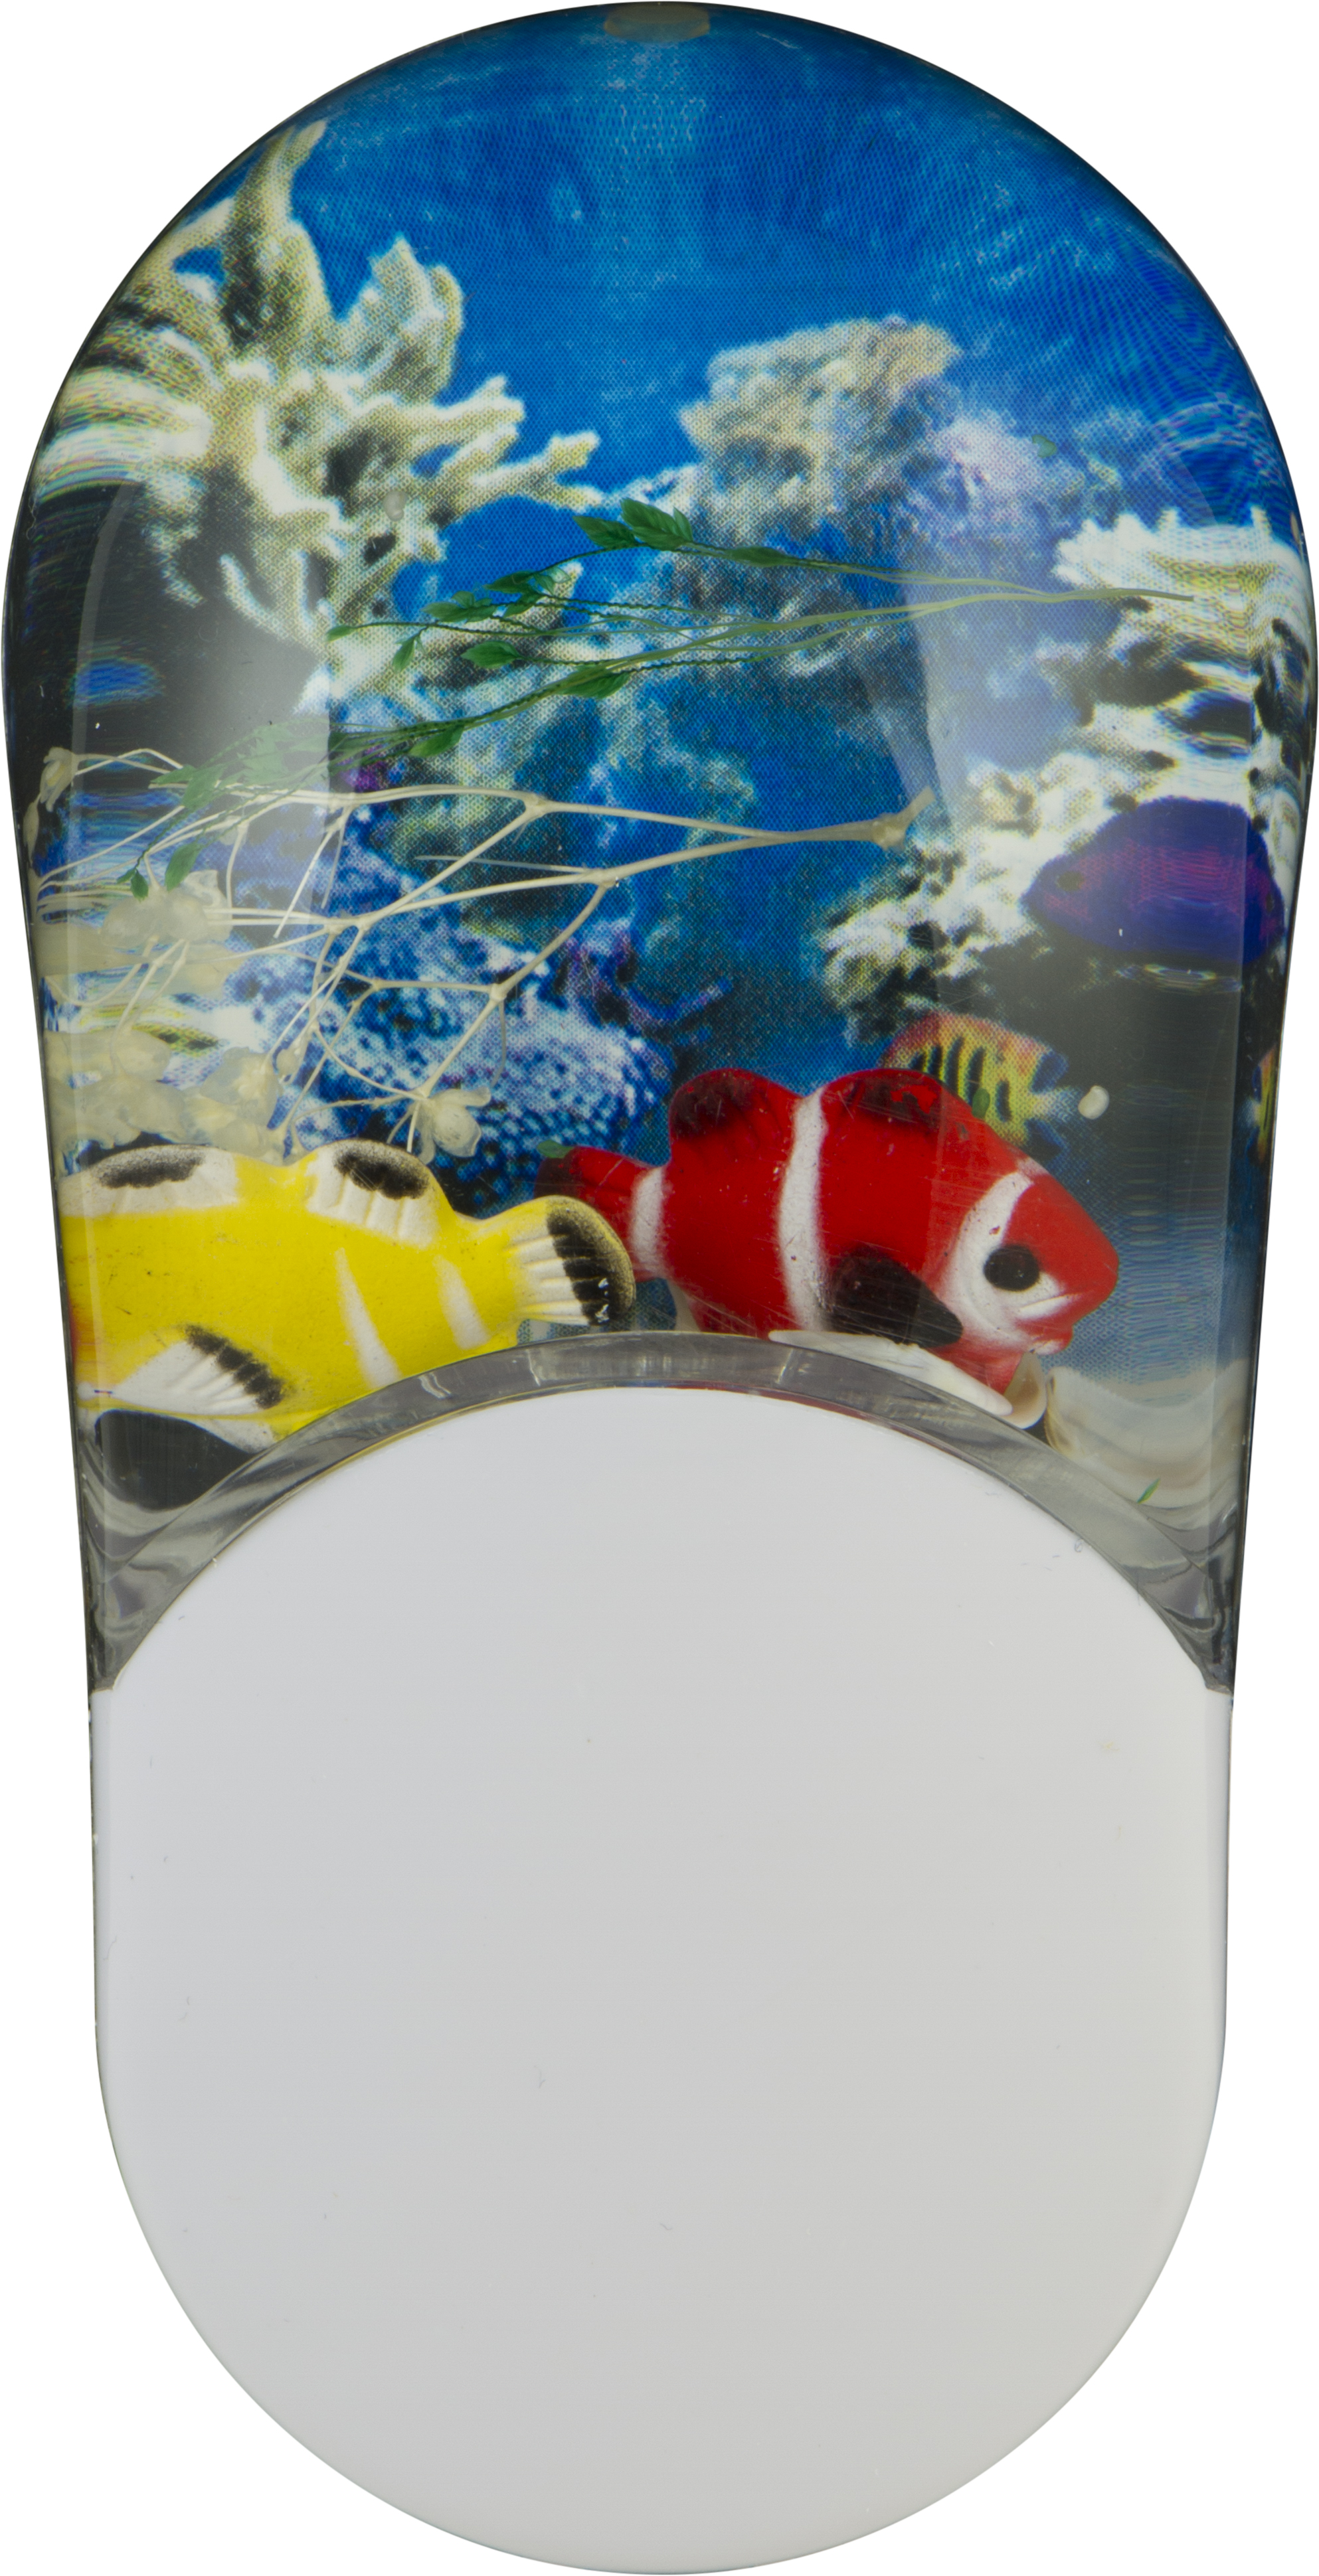 Aqualites Color-Changing LED Night Light, Tropical Fish, 10908 by Jasco Products Company, LLC